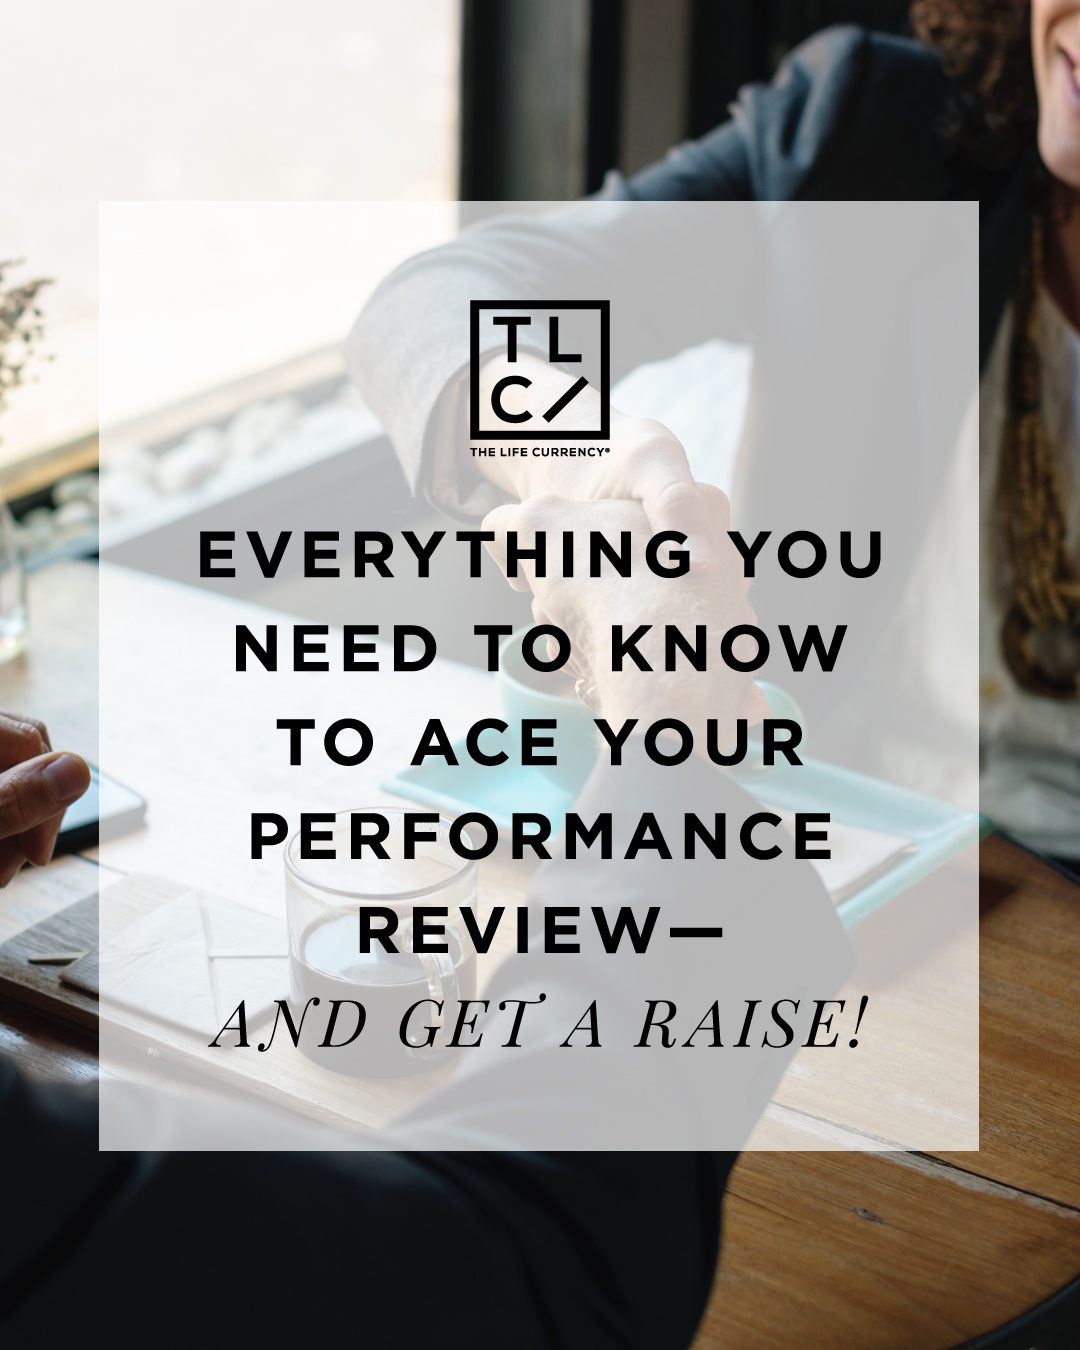 how-to-ace-your-performance-review-and-get-a-raise.jpg